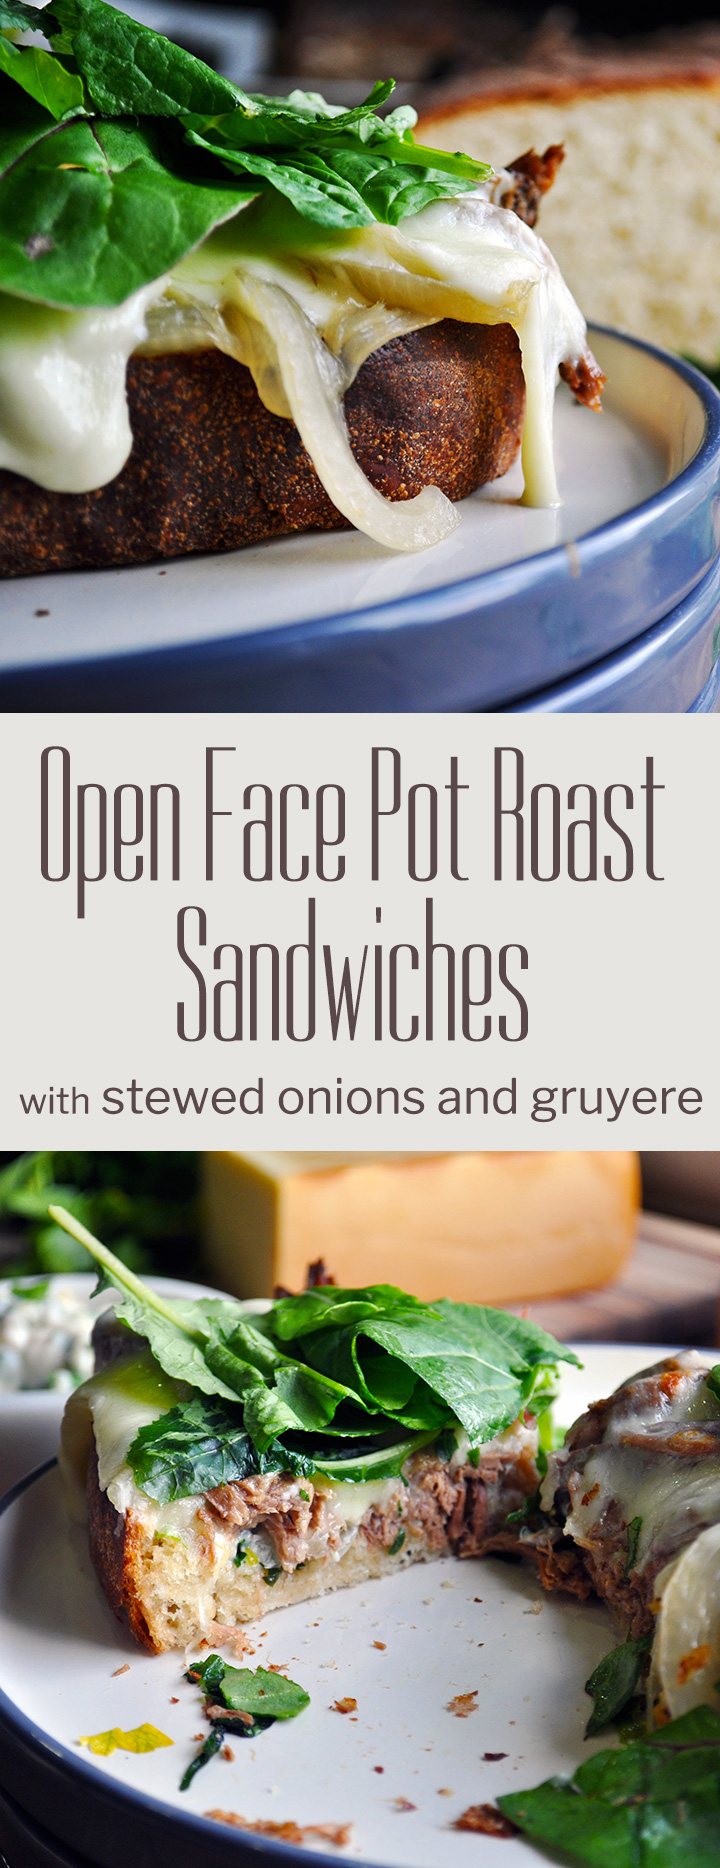 Open face pot roast sandwiches with stewed onions and gruyere | alittleandalot.com